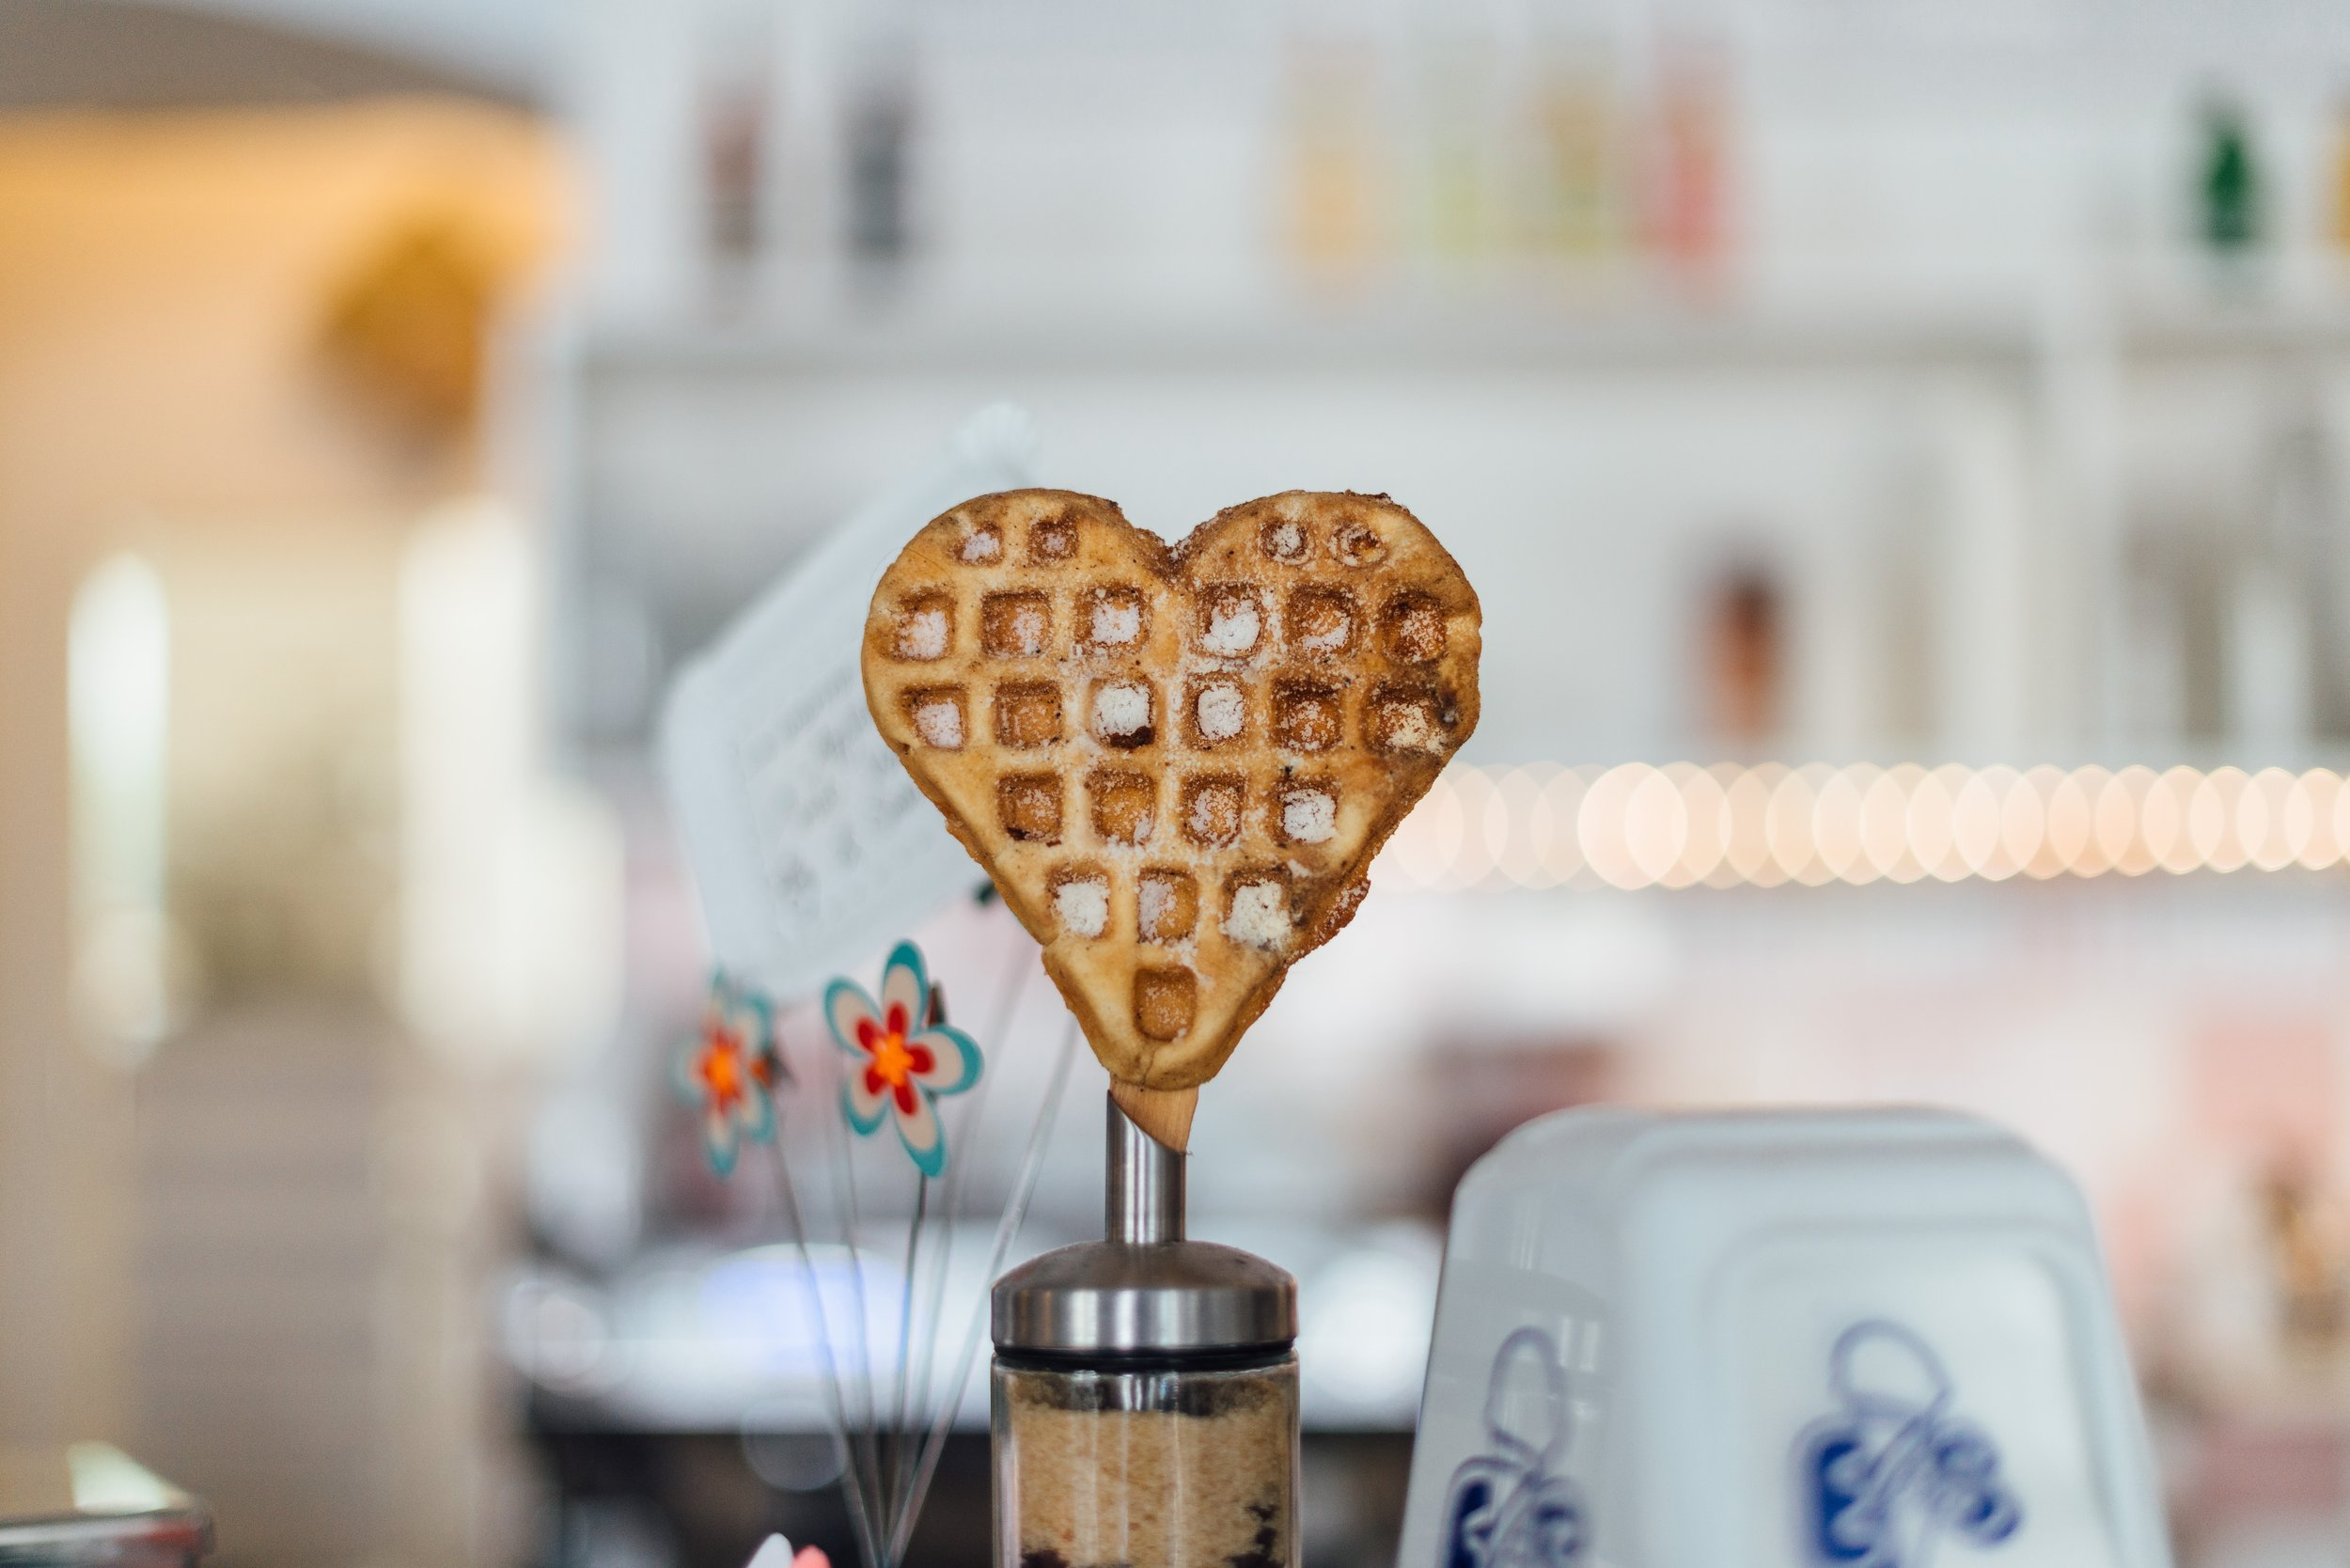 An Instagram hashtag is a great way to embrace Valentine's Day marketing. Get the picture? (Photo credit: Roman Kraft via Unsplash)